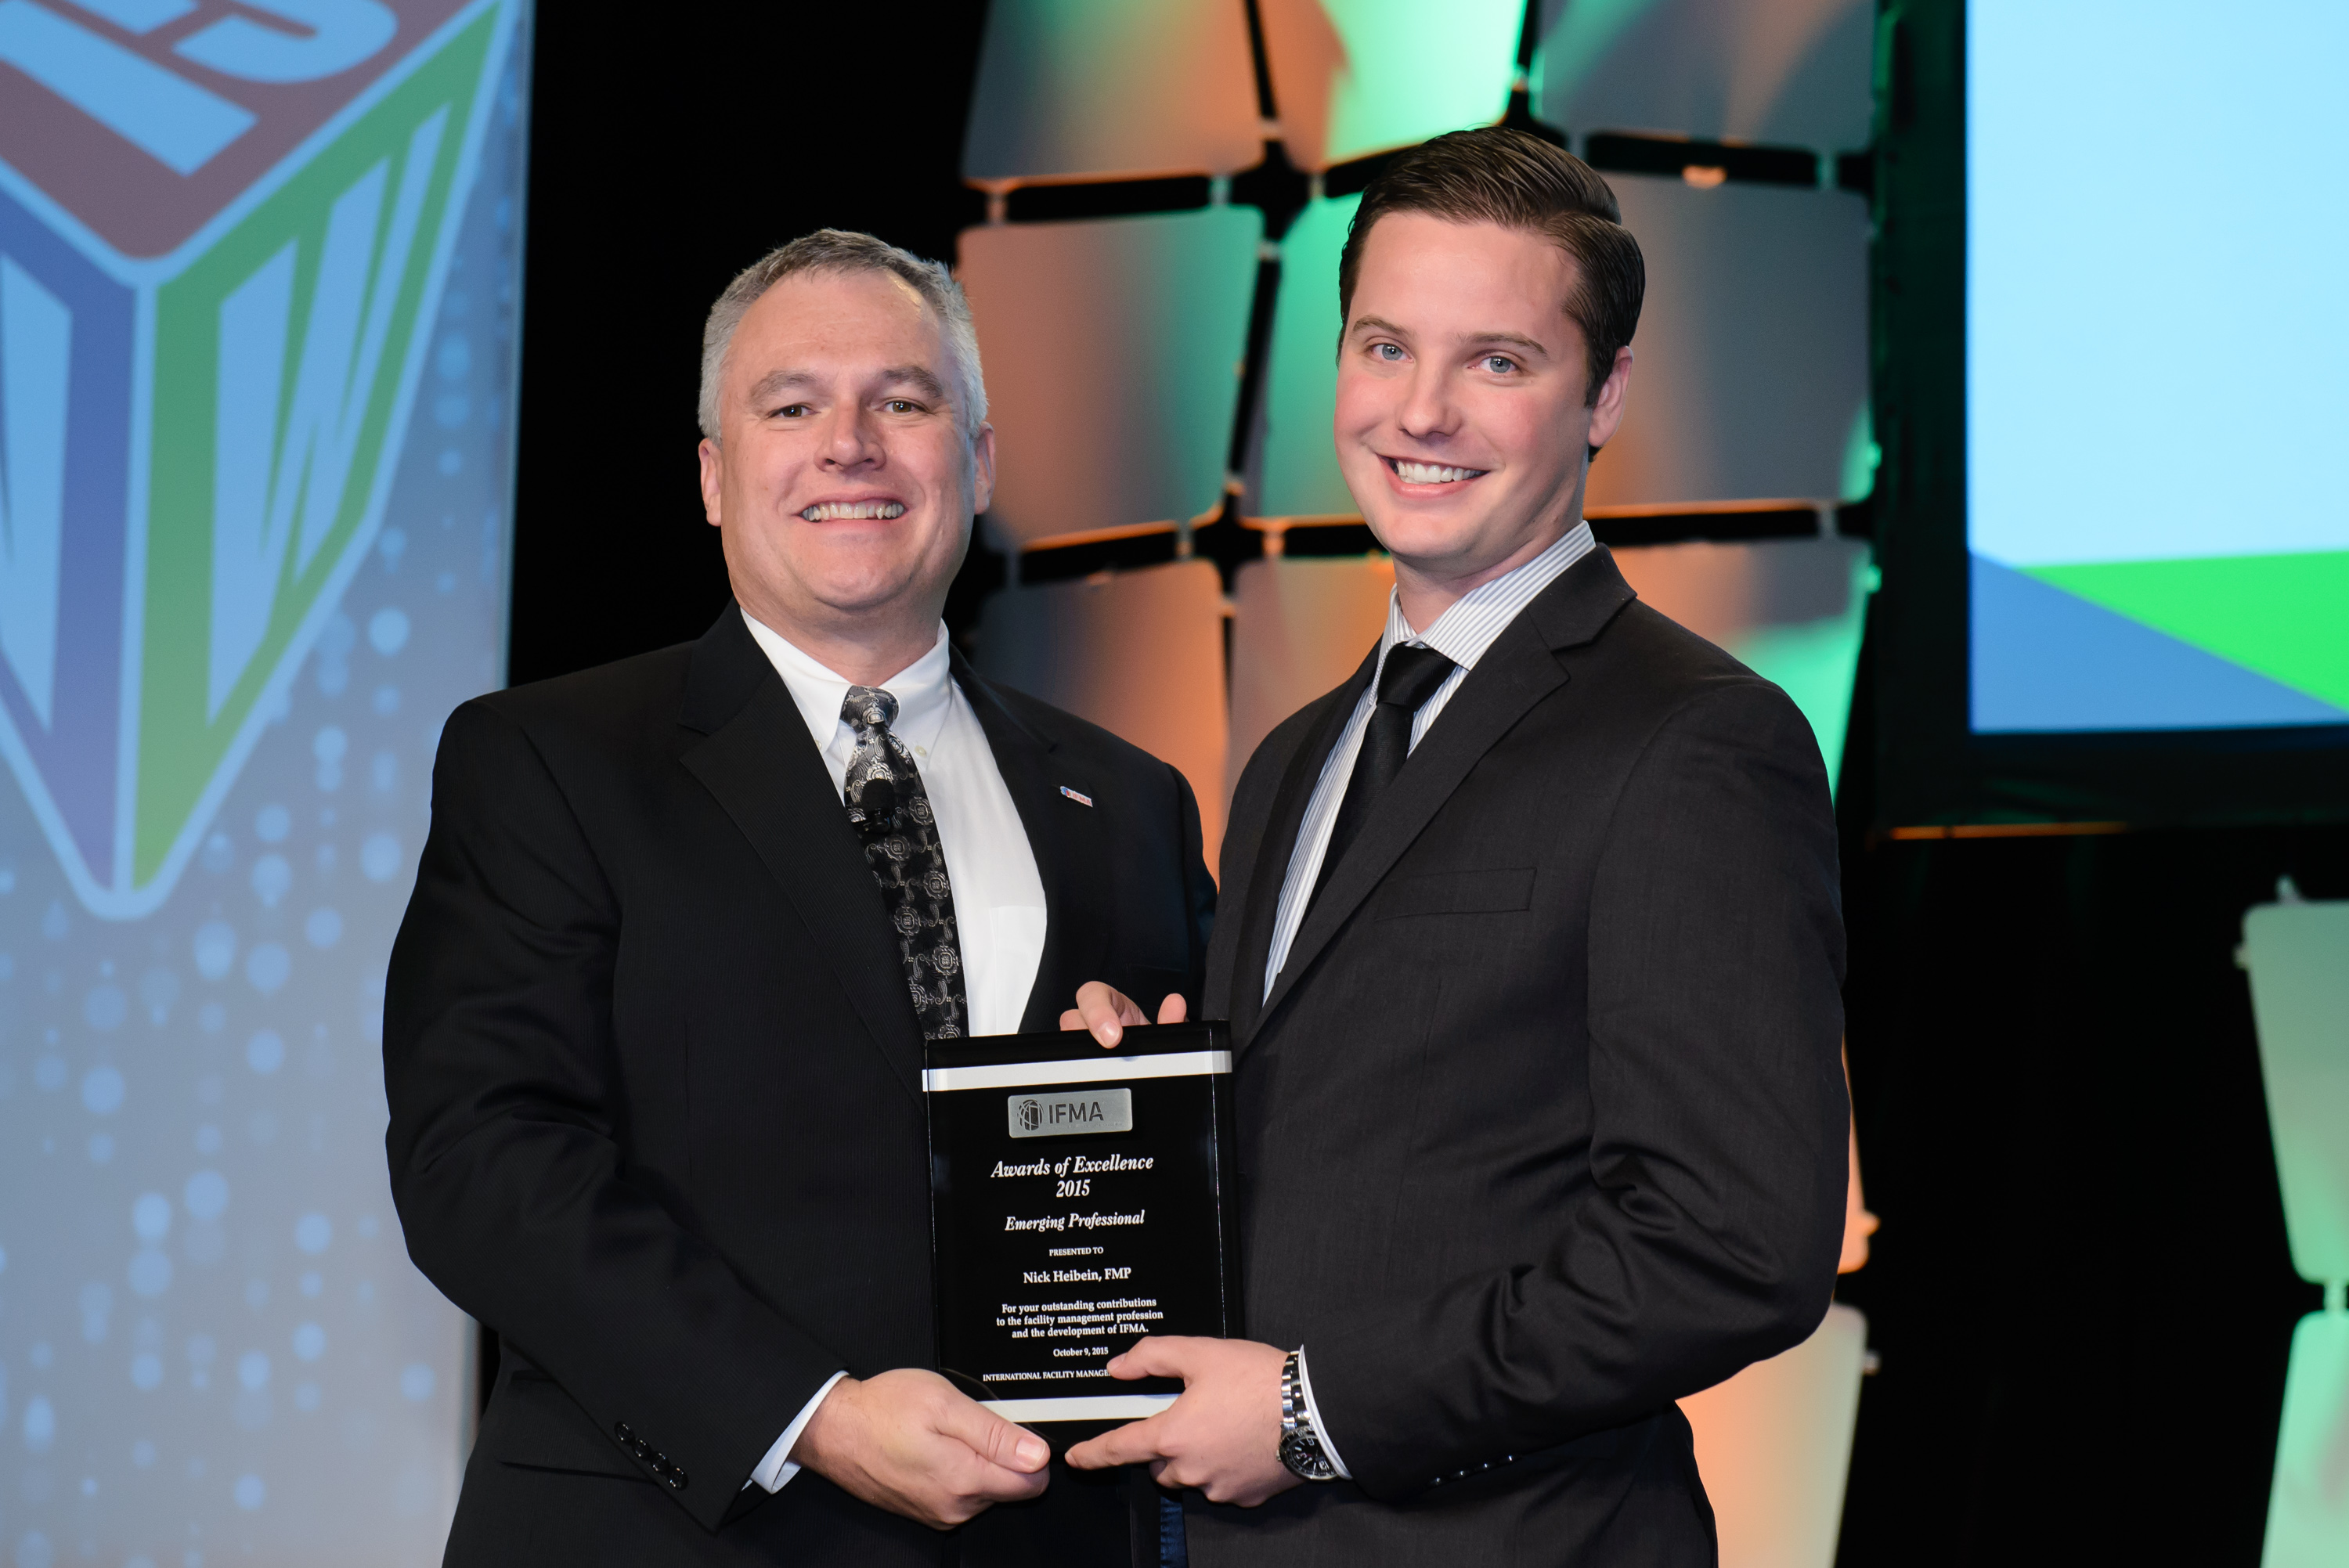 Nick Heibein receives Emerging Professional Award